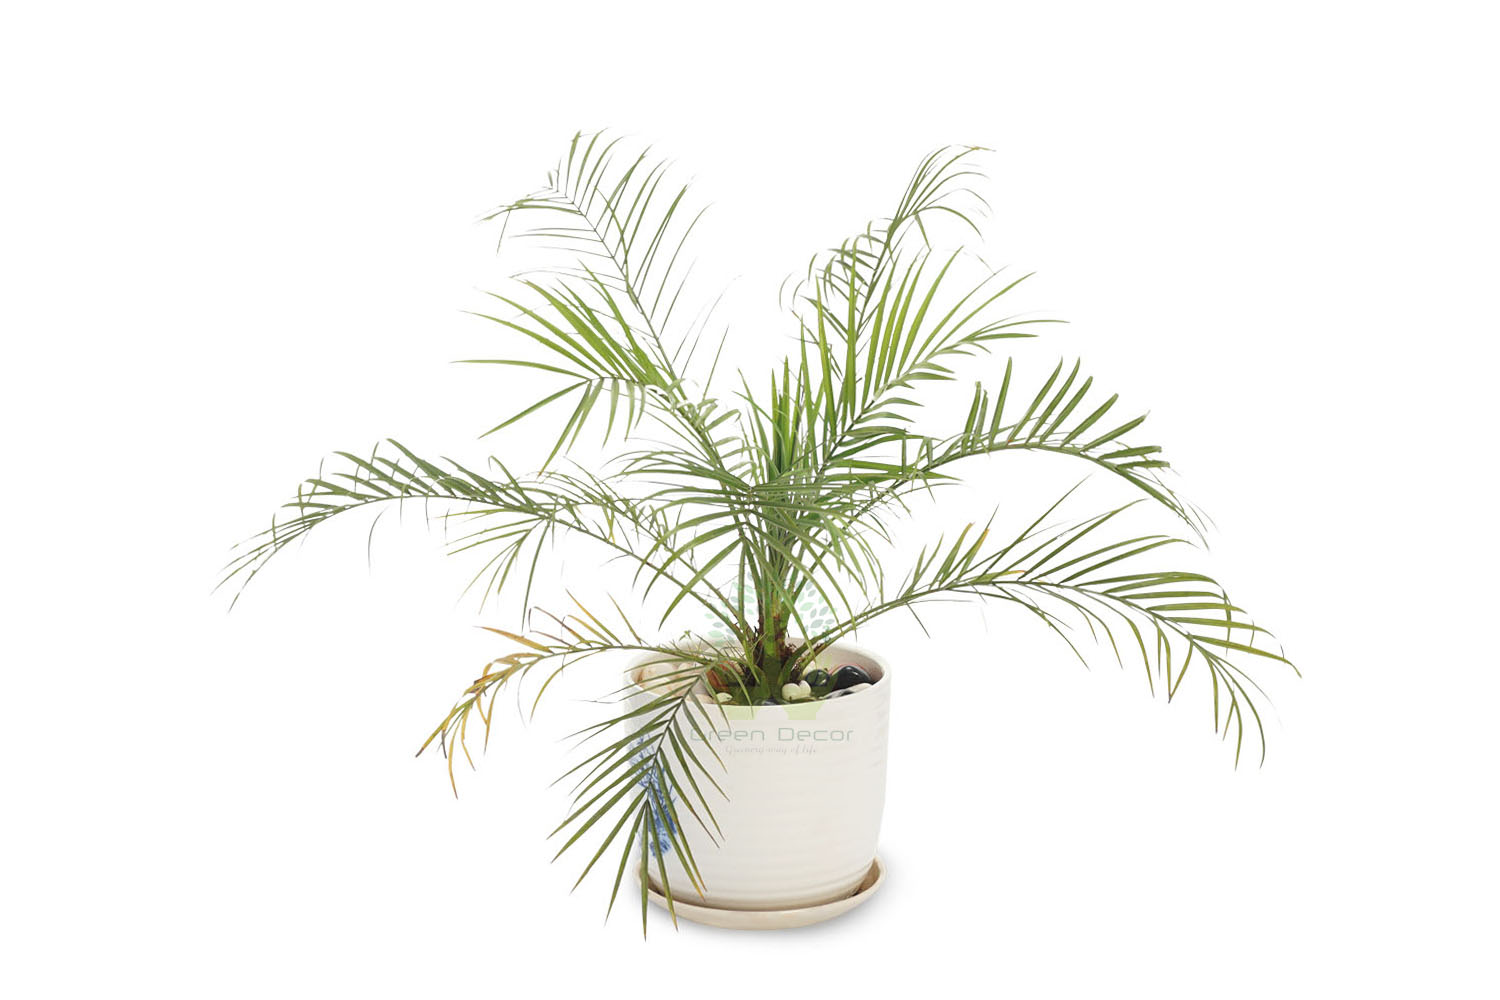 Buy Dwarf Date Palm Plants , White Pots and seeds in Delhi NCR by the best online nursery shop Greendecor.